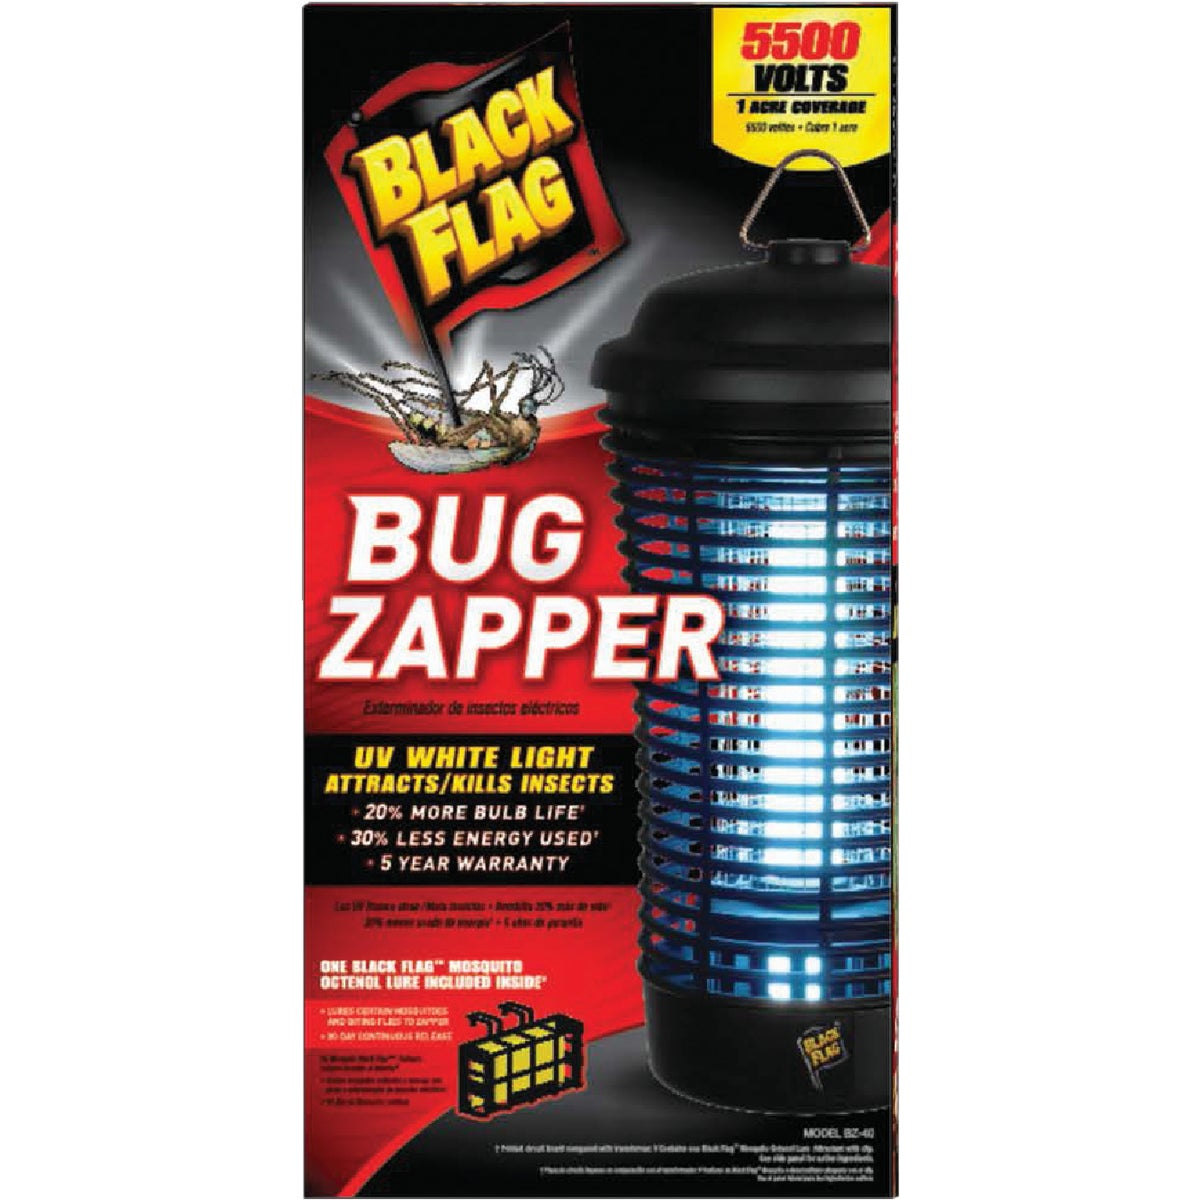 1 ACRE INSECT KILLER